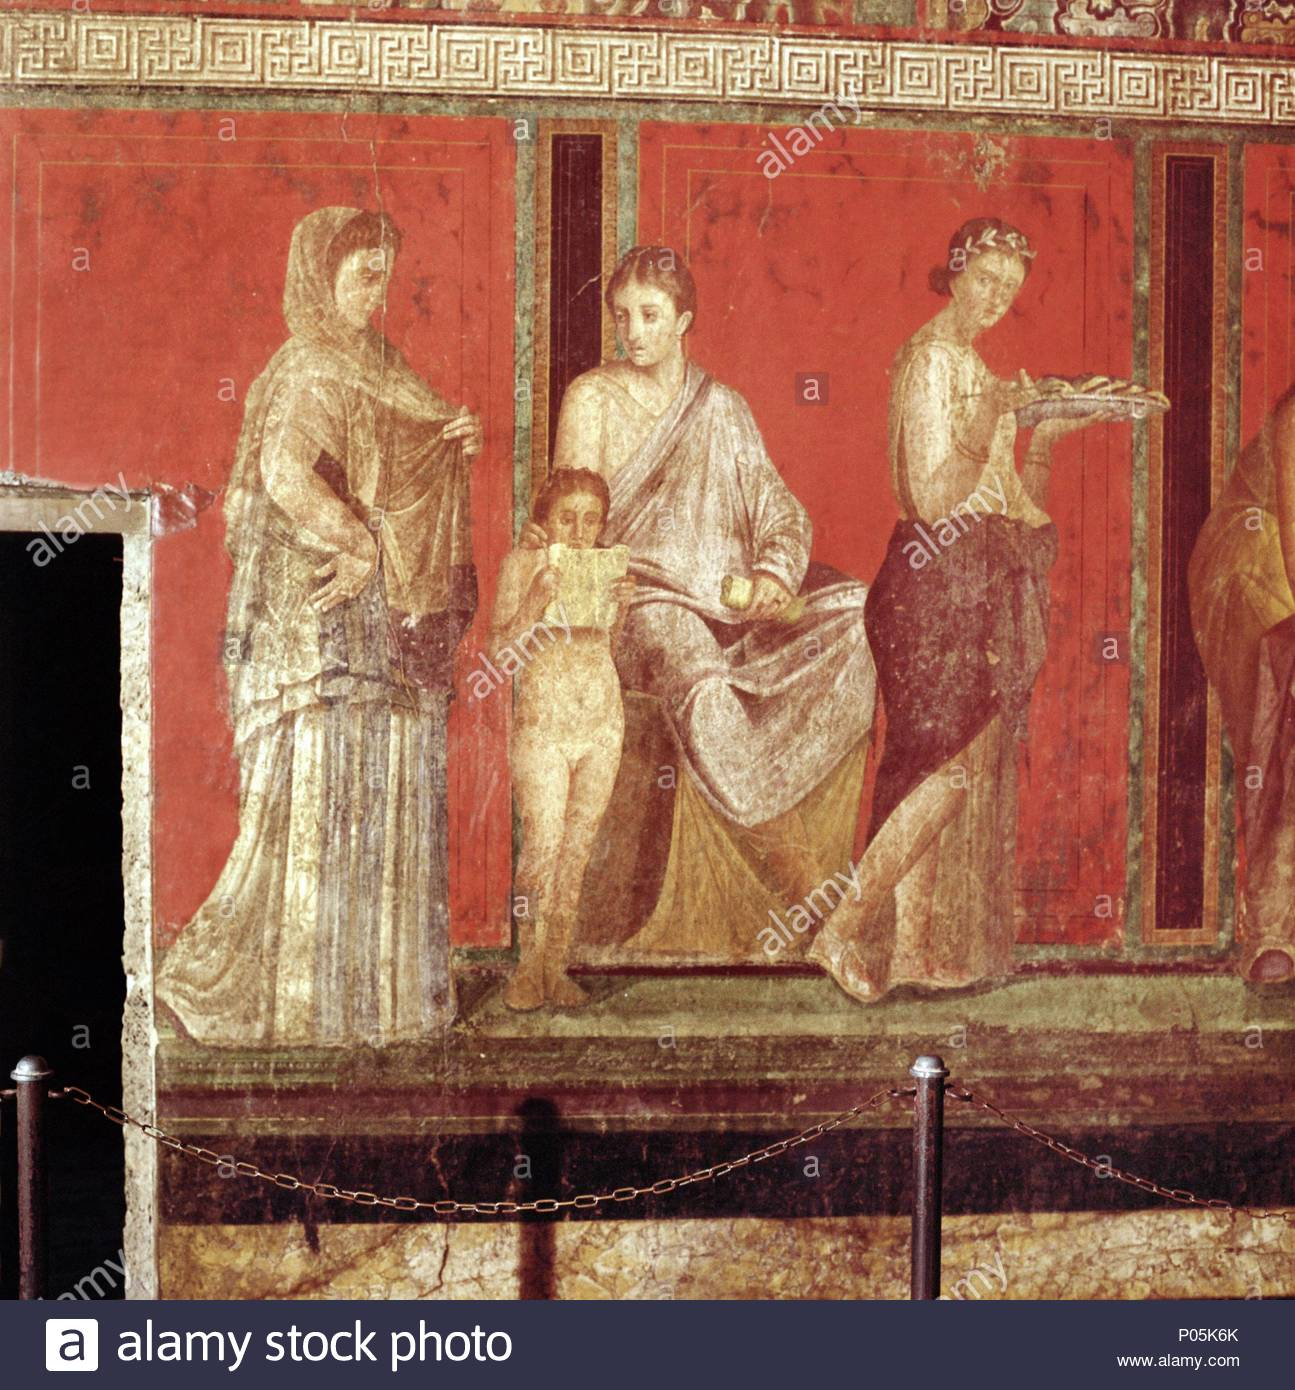 Mural from the villa of the Mysteries, Pompeii. The series of   frescoes illustrates the rites of initiation of brides to the cult of Dionysos.   Before 79 CE. Location: Archaeological Site, Pompeii, Italy. - Stock Image